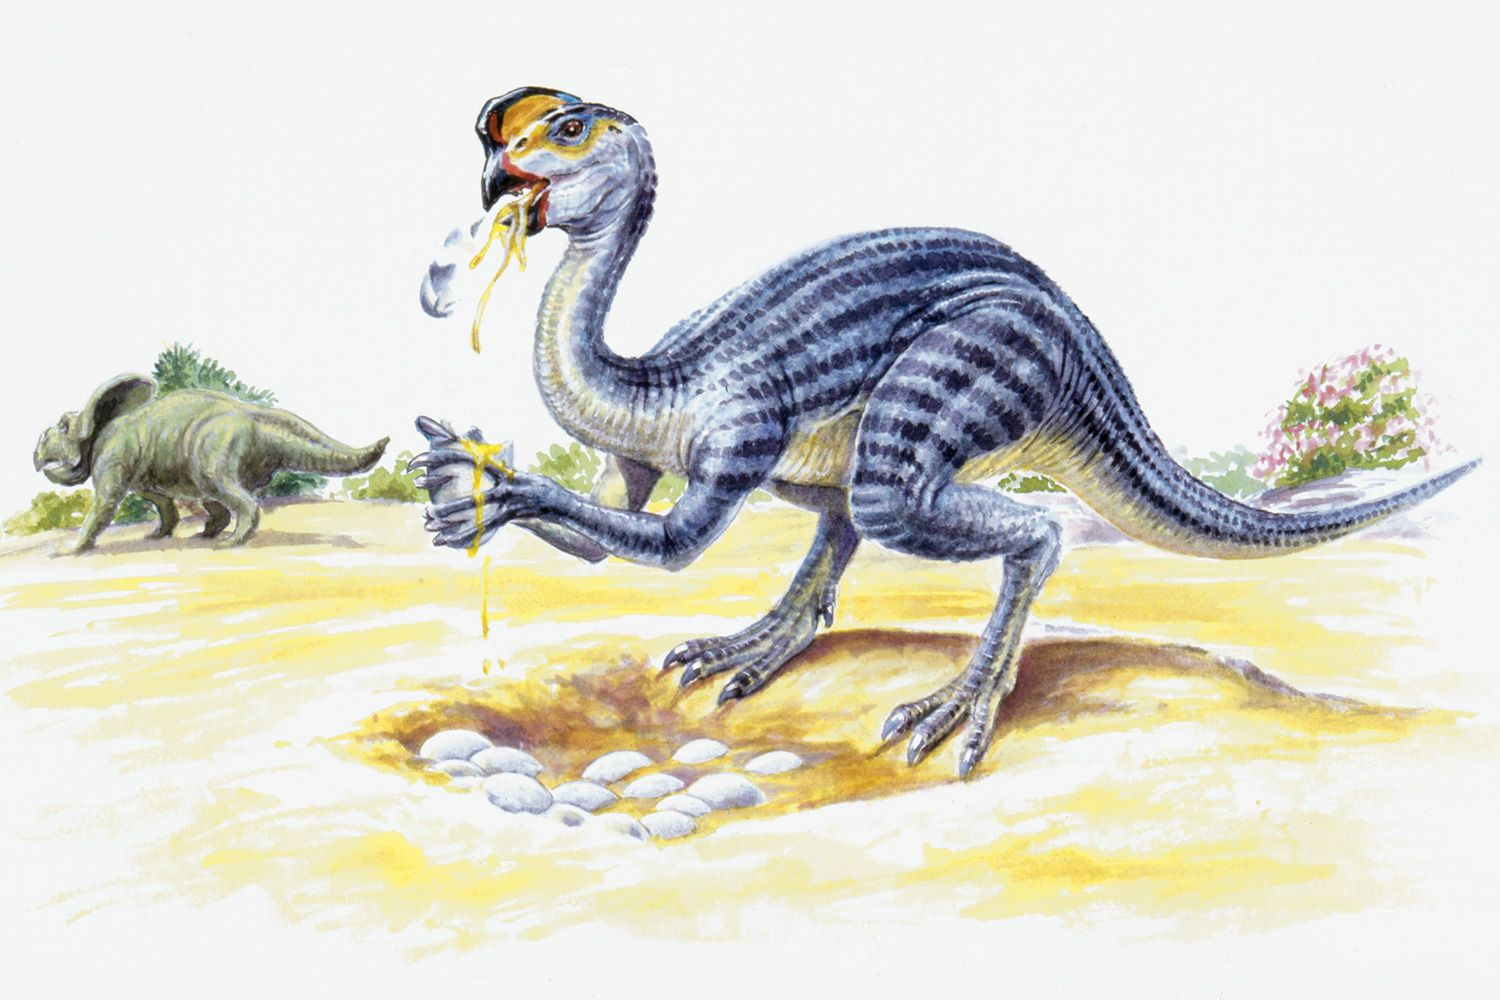 From Sauropods to Tyrannosaurs: The 15 Main Dinosaur Types